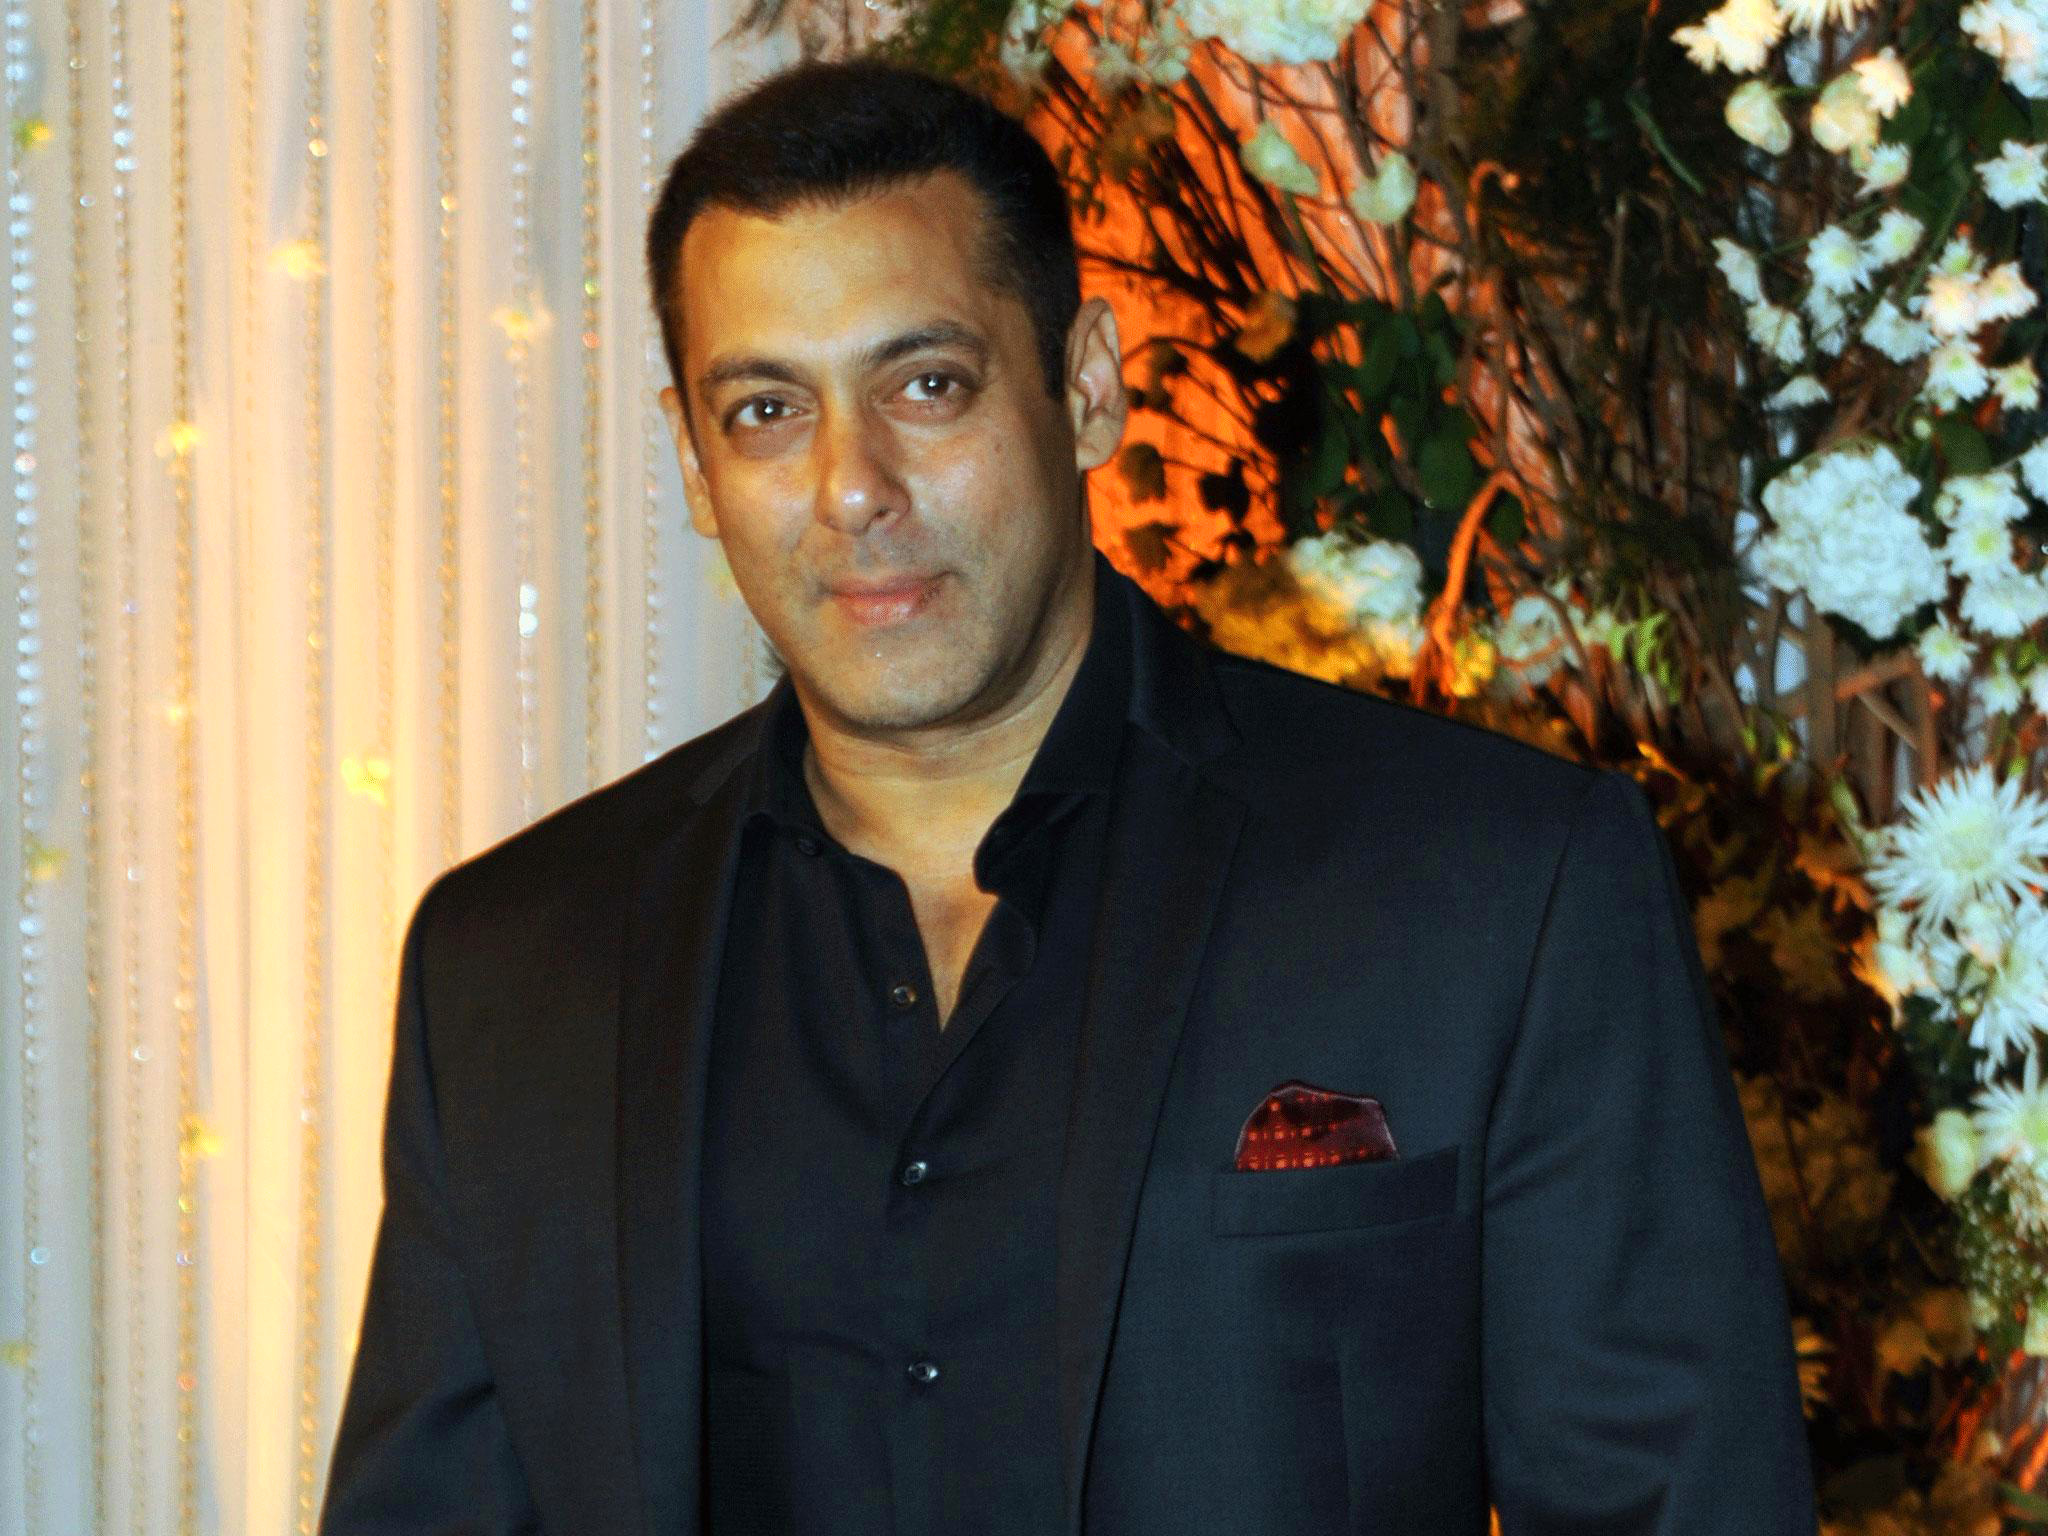 Salman Khan Photo 2